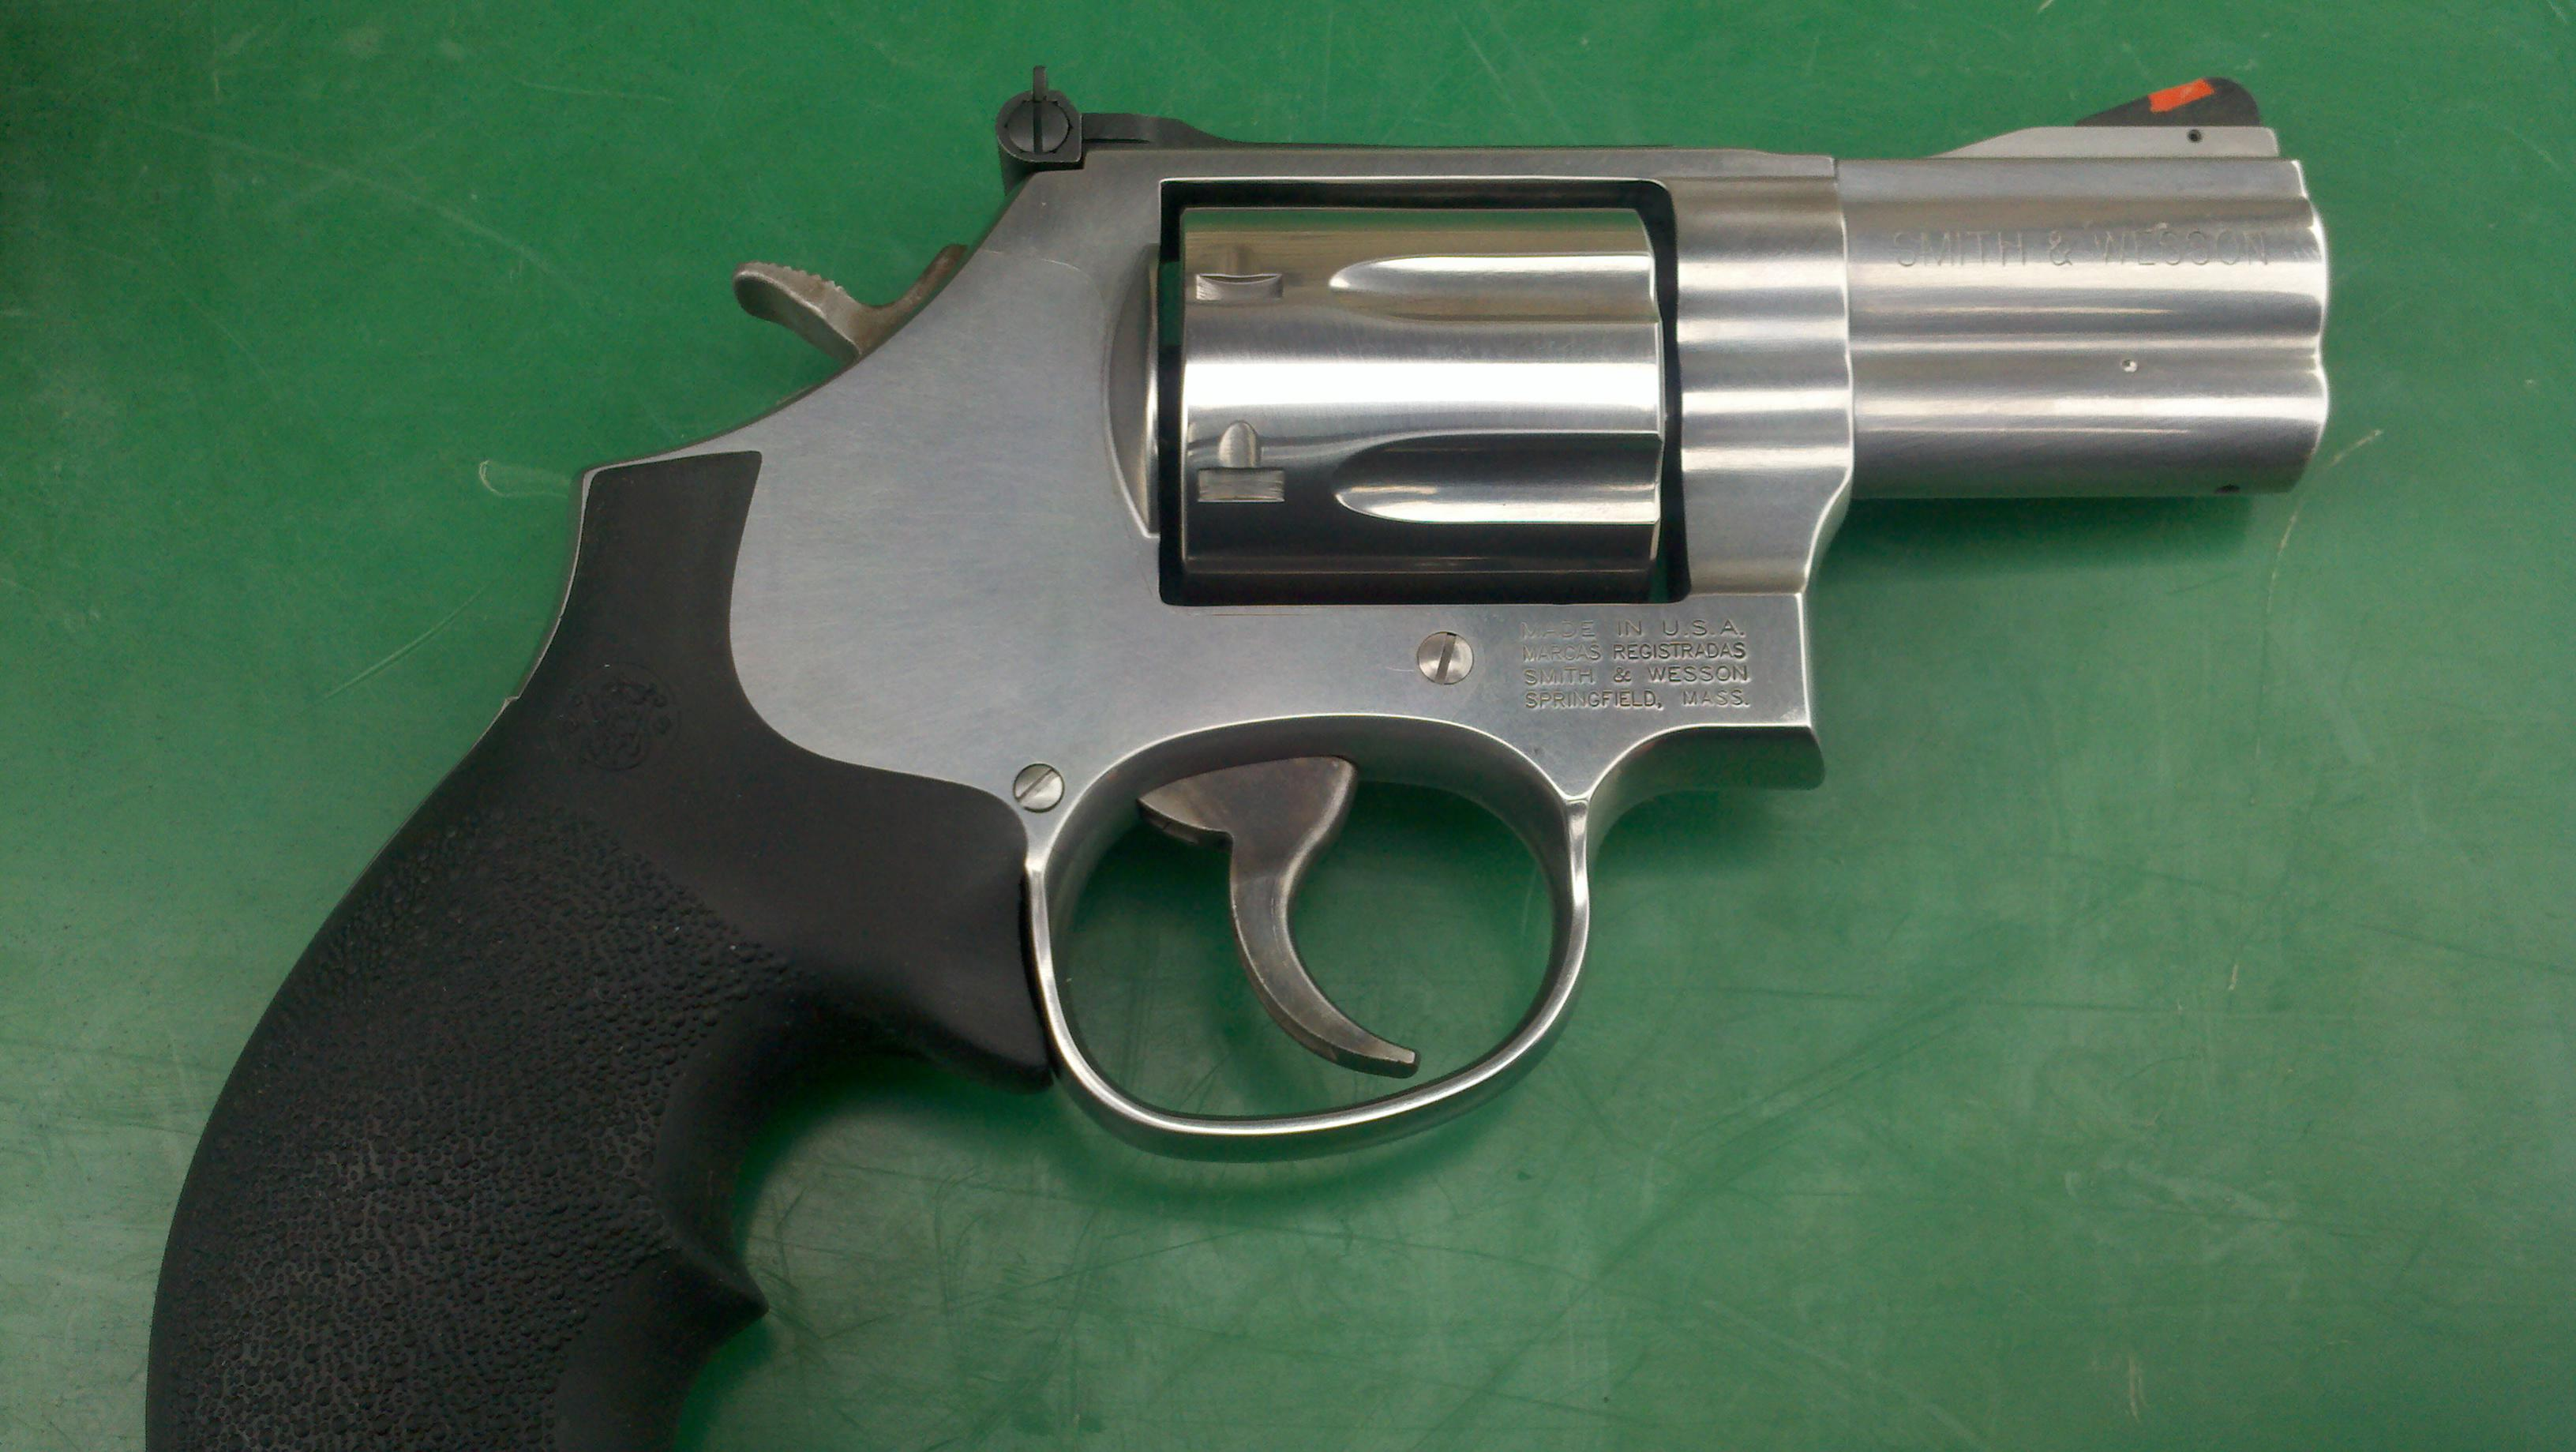 Ruger GP100 or S&W 686 Which one?